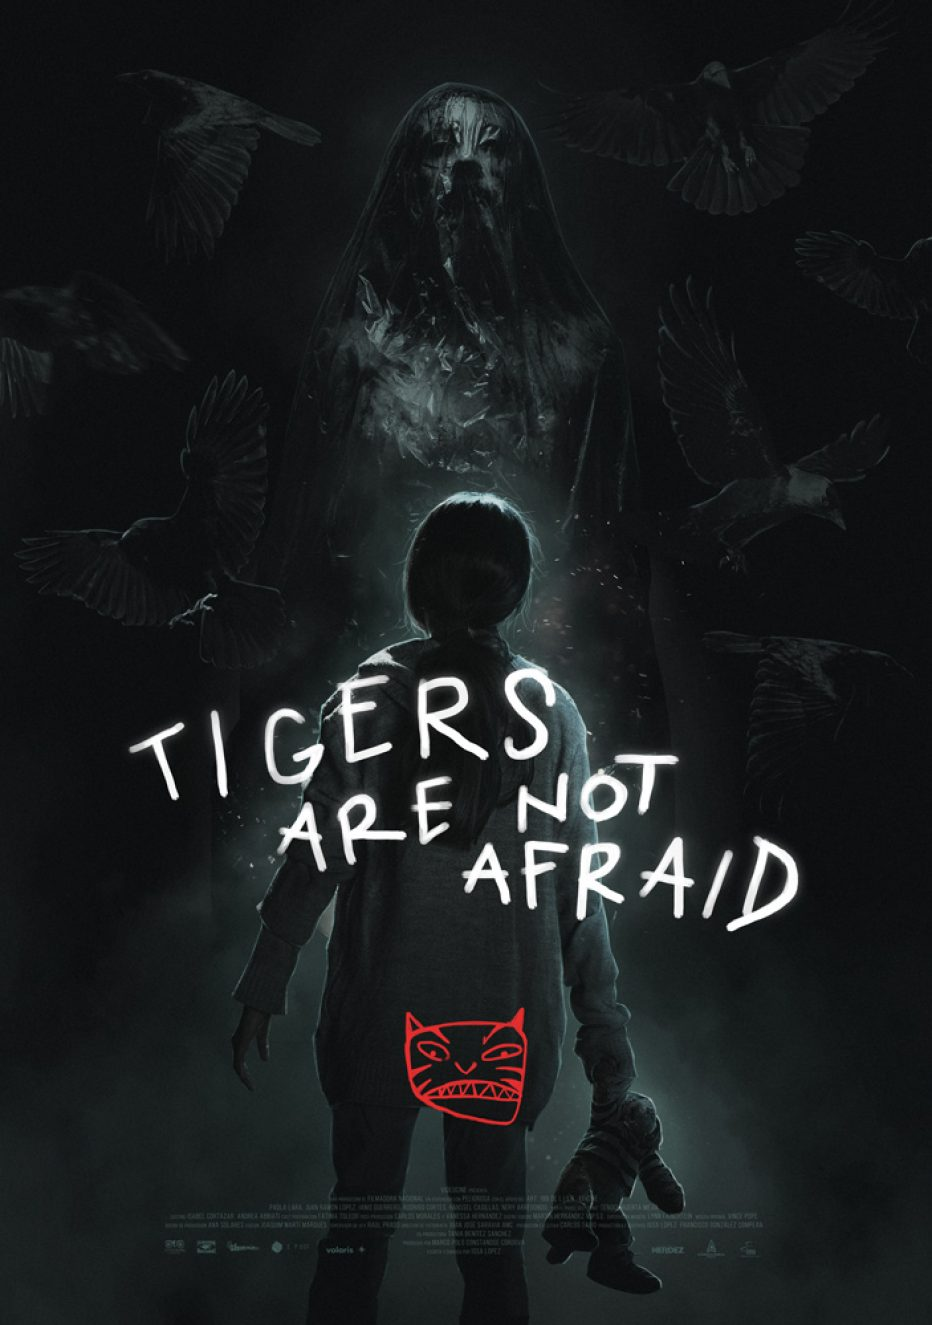 Interview with Issa Lopez, director of TIGERS ARE NOT AFRAID